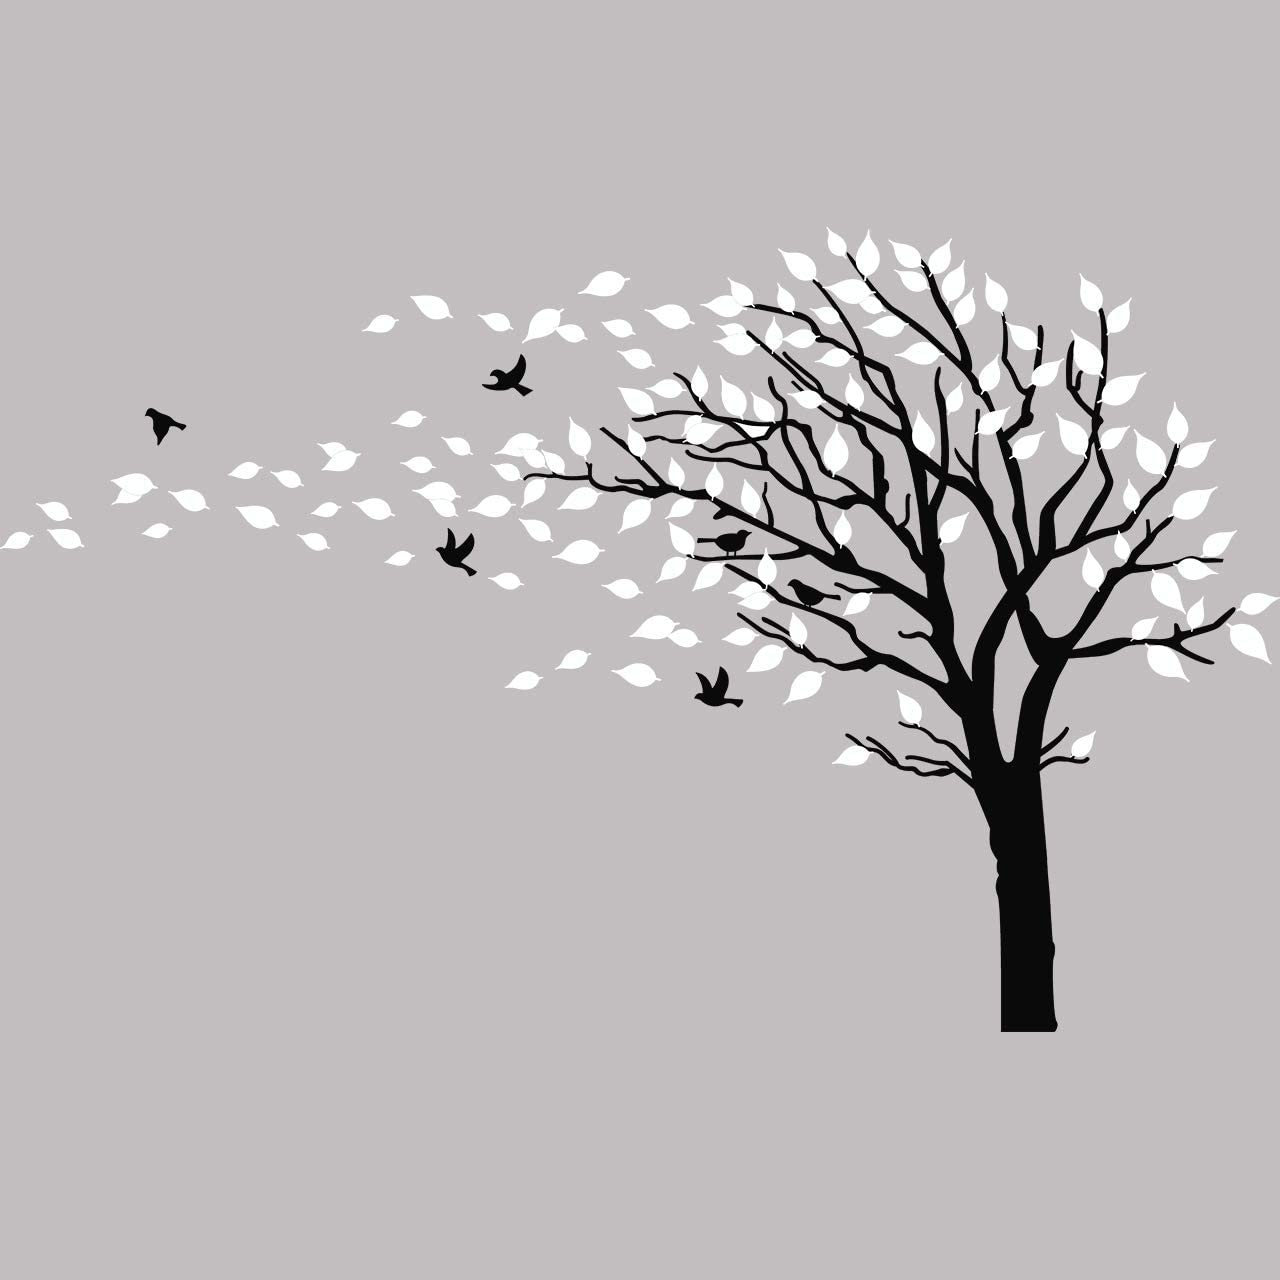 Large Tree Blowing in The Wind Tree Wall Decals Wall Sticker Vinyl Art Kids Rooms Teen Girls Boys Wallpaper Murals Sticker Wall Stickers Nursery Decor Nursery Decals (Black and White,Left)